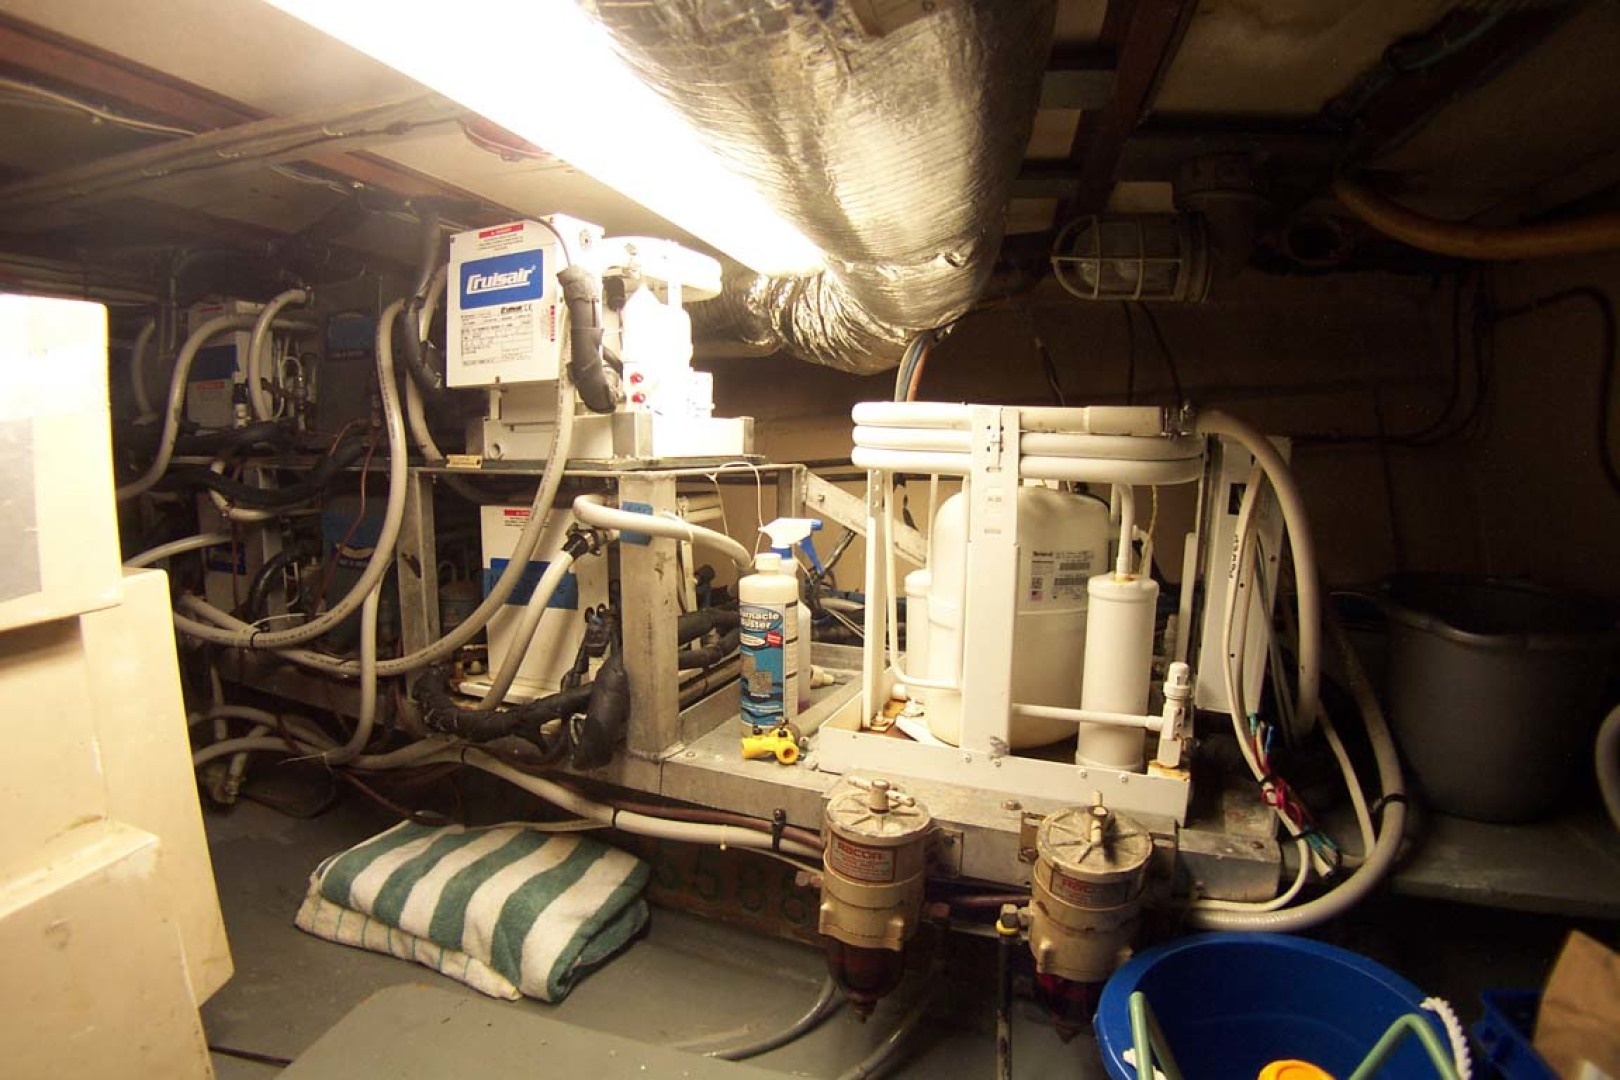 Hatteras-61 Motoryacht 1980-Piece A Cake Ft. Pierce-Florida-United States-A/C Compressors-1094546 | Thumbnail